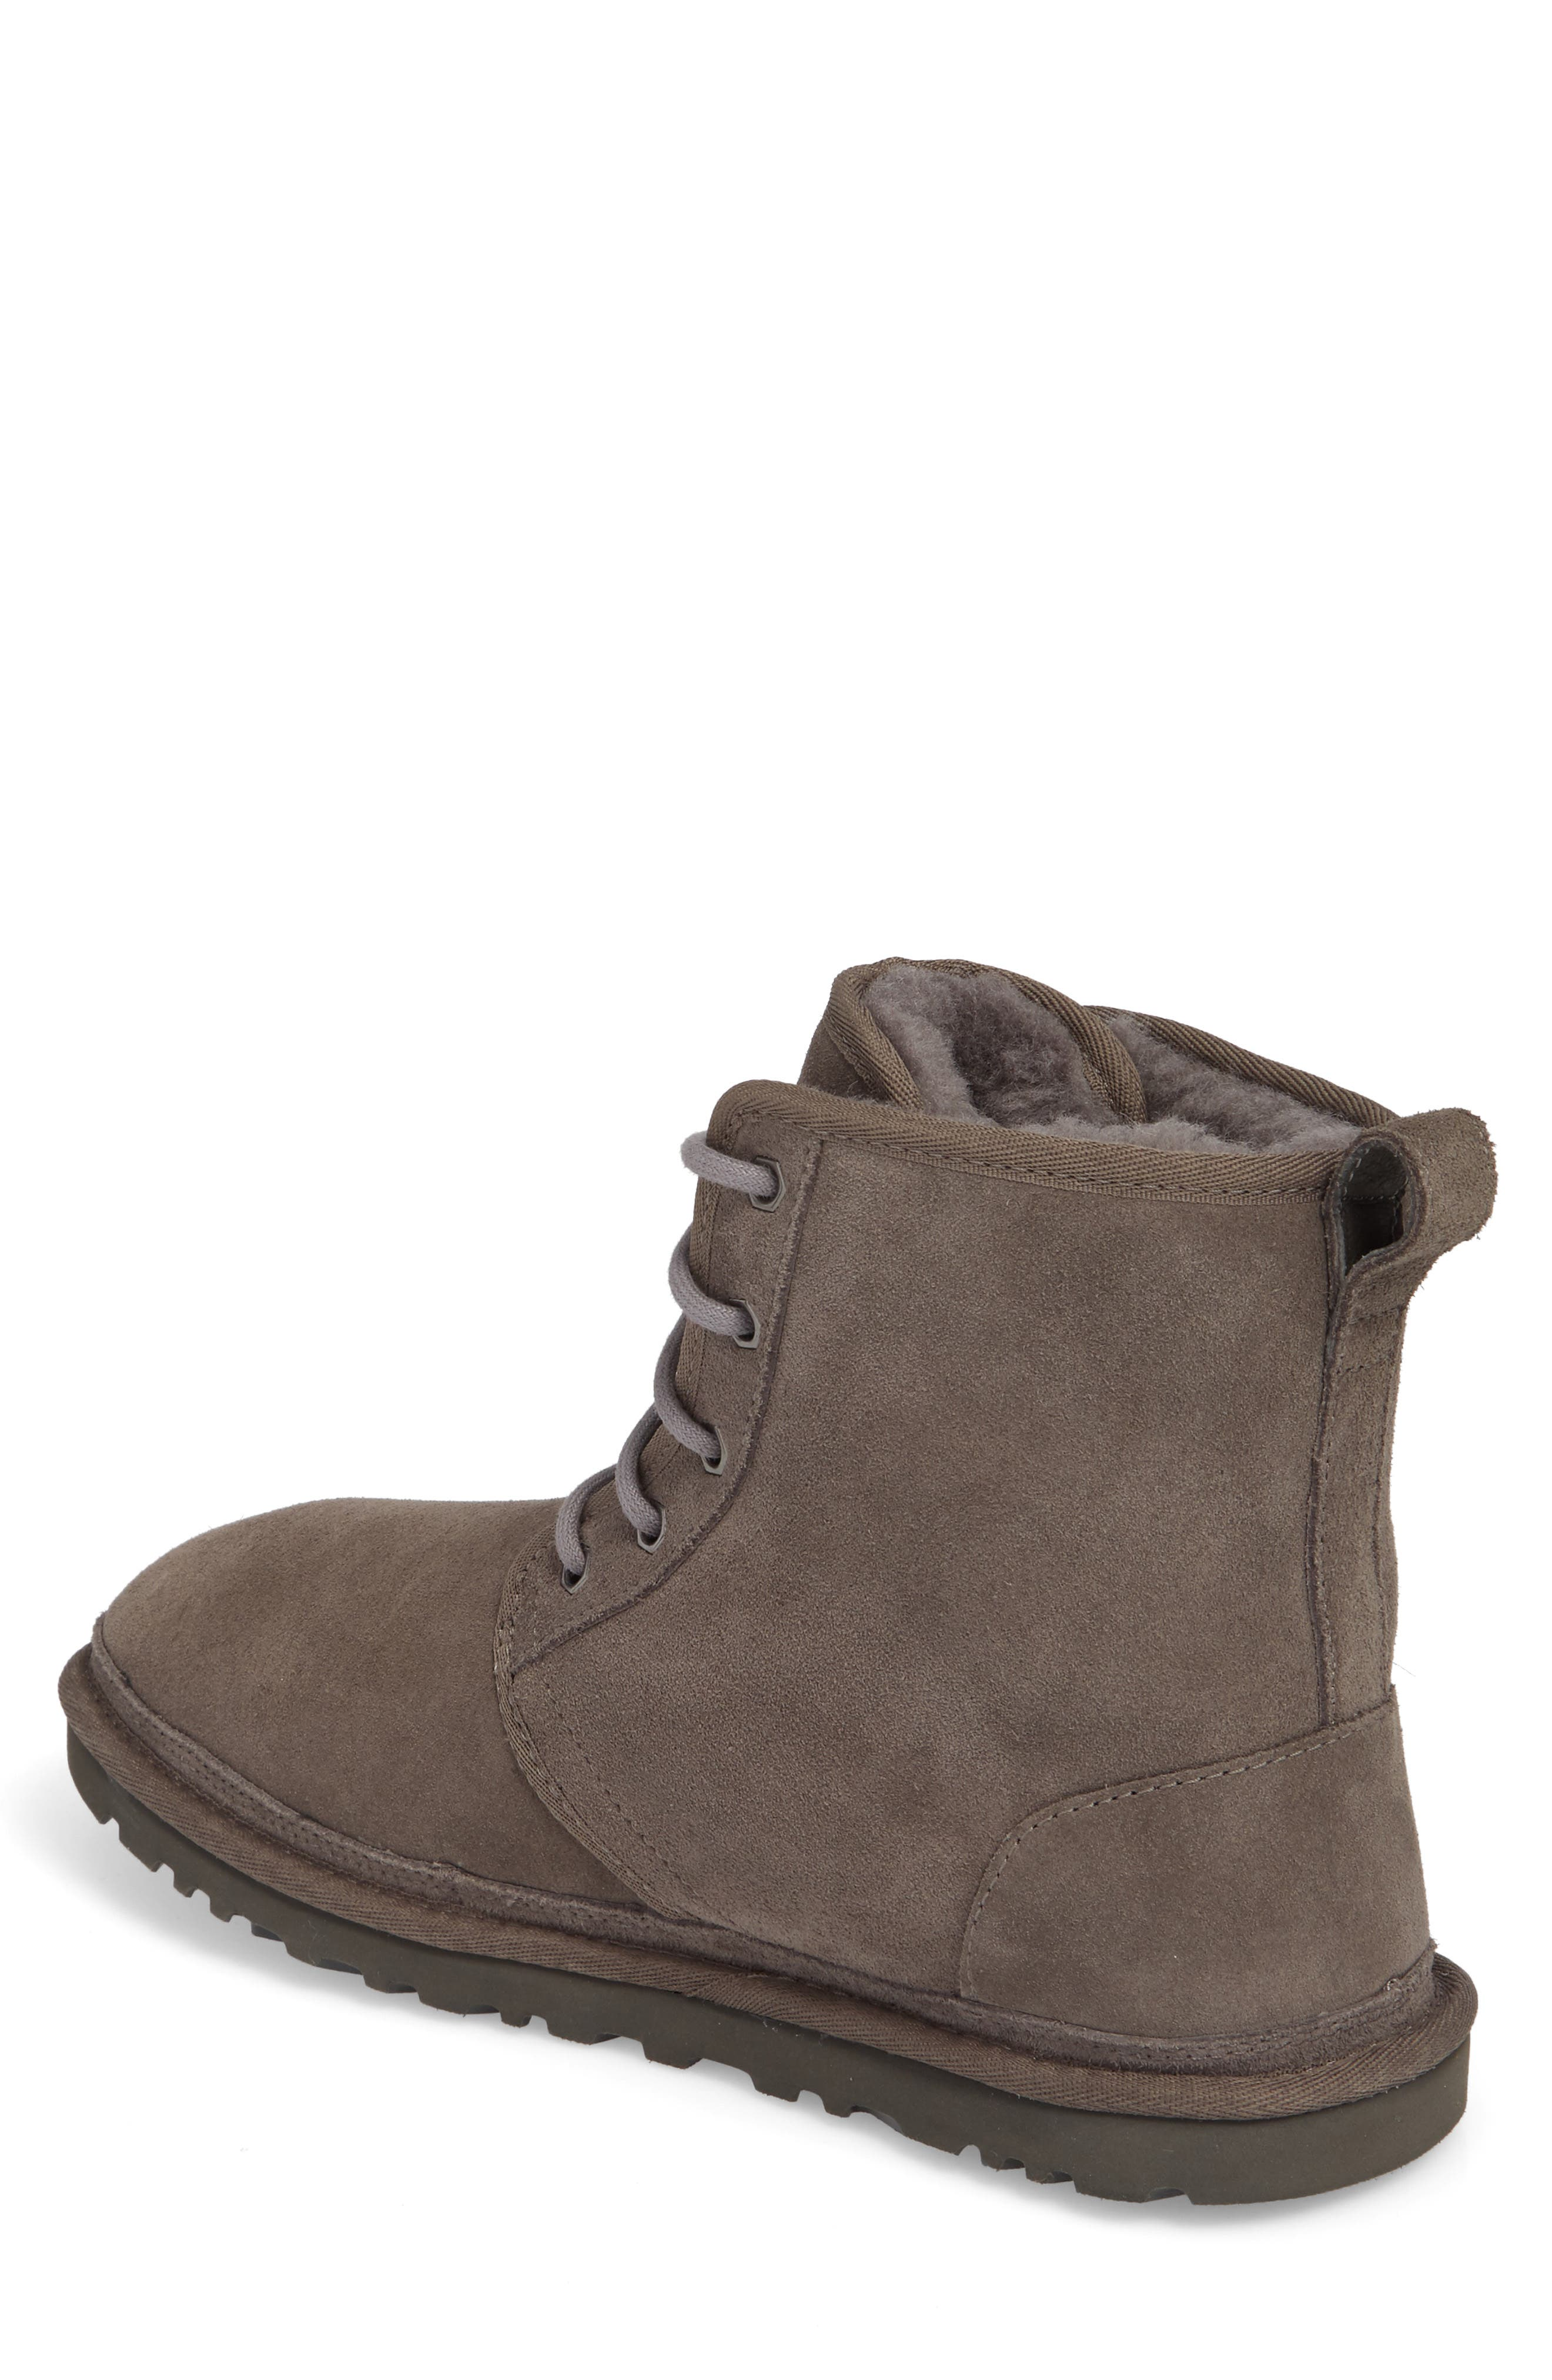 Chaussures UGG® pour homme | pour taille 6 6 | 5248c47 - nobopintu.website